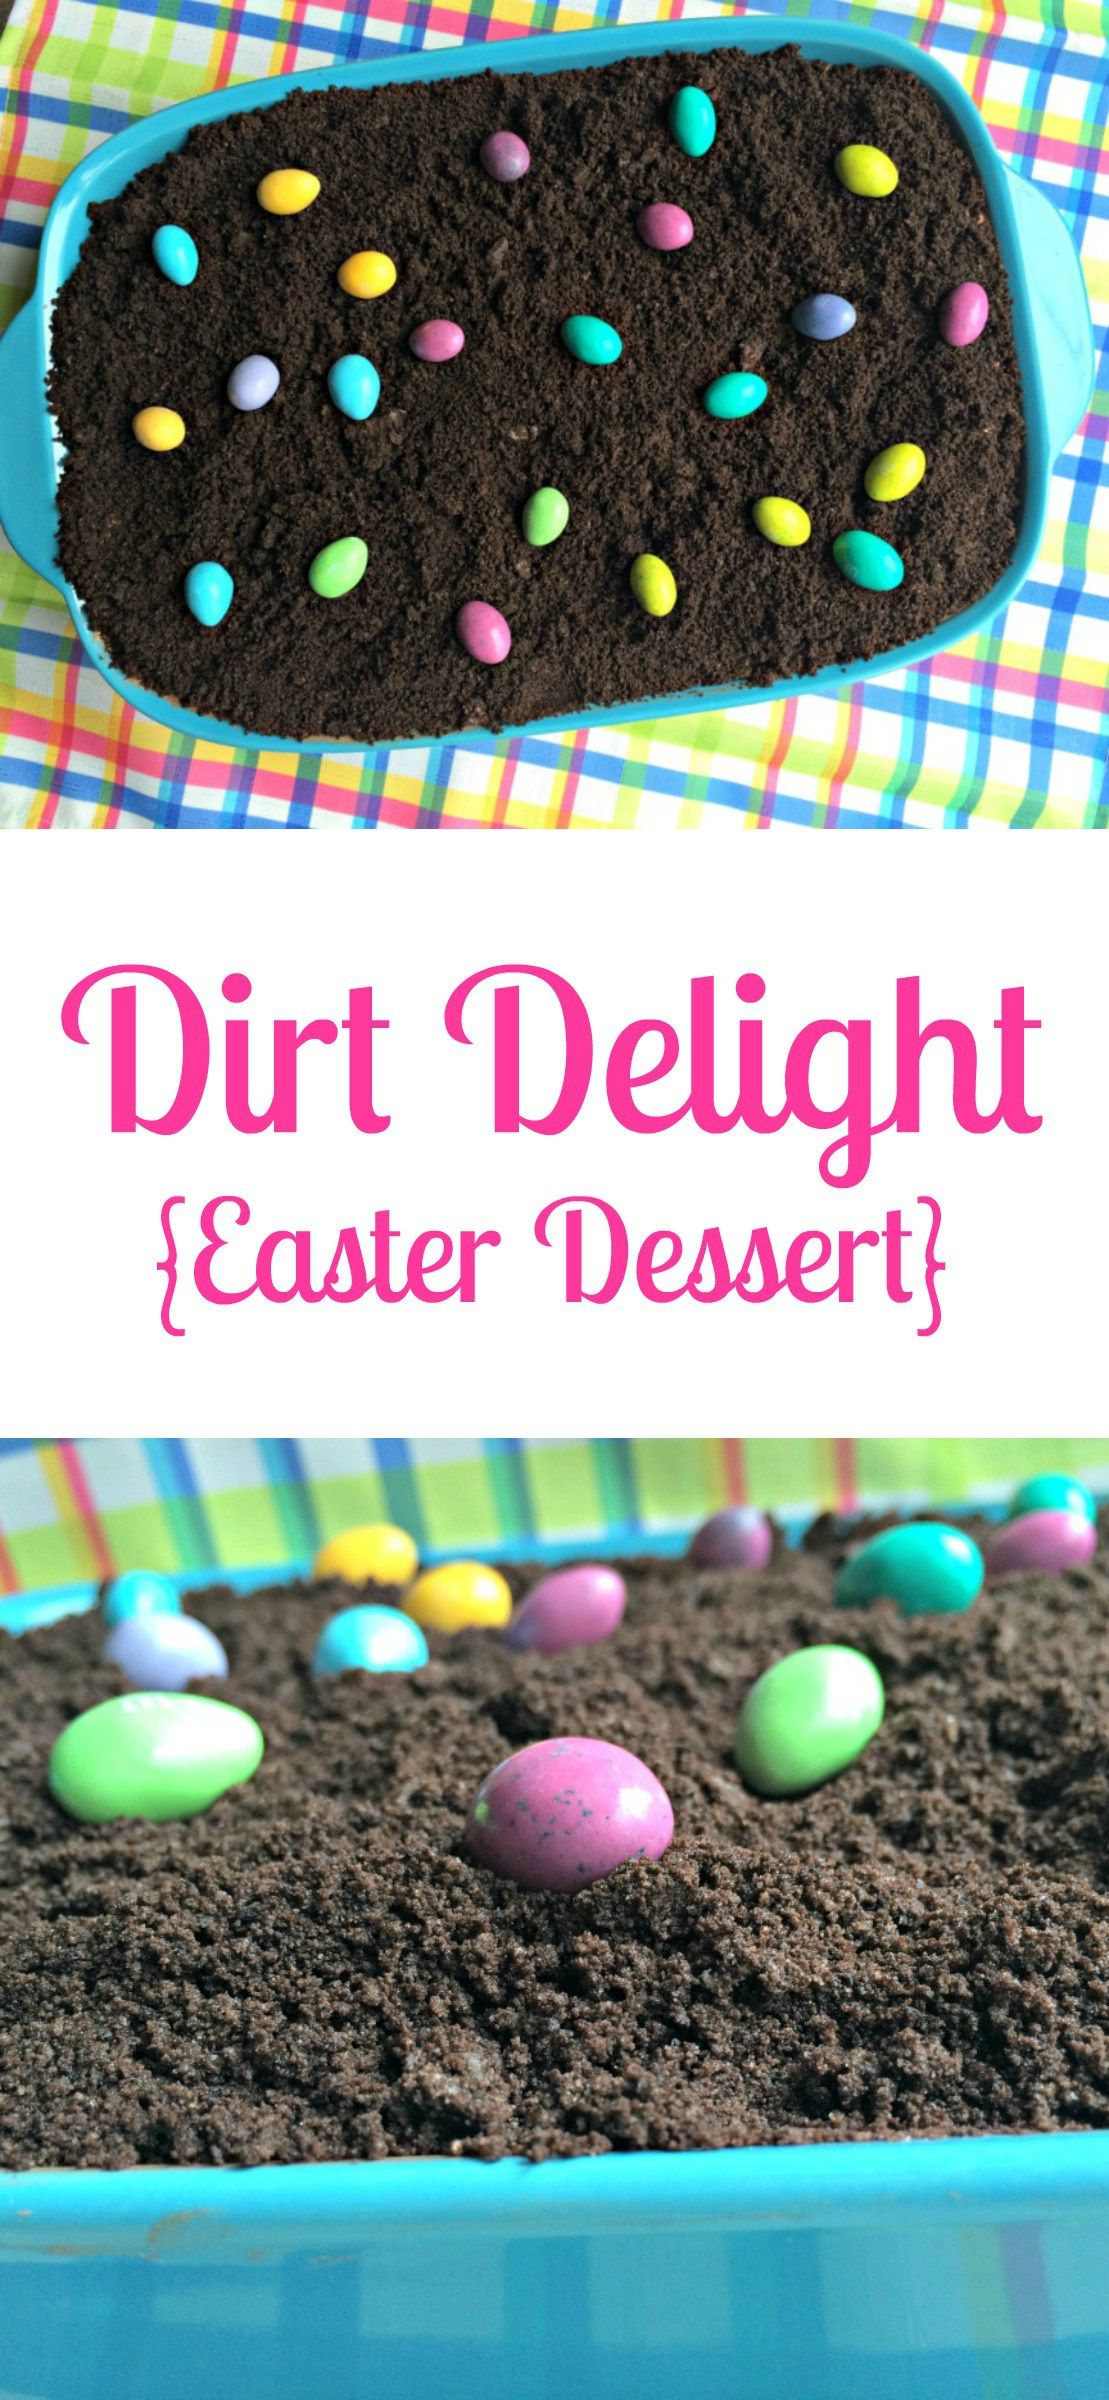 Dirt Delight Easter Sweets With Images Easter Dirt Cake